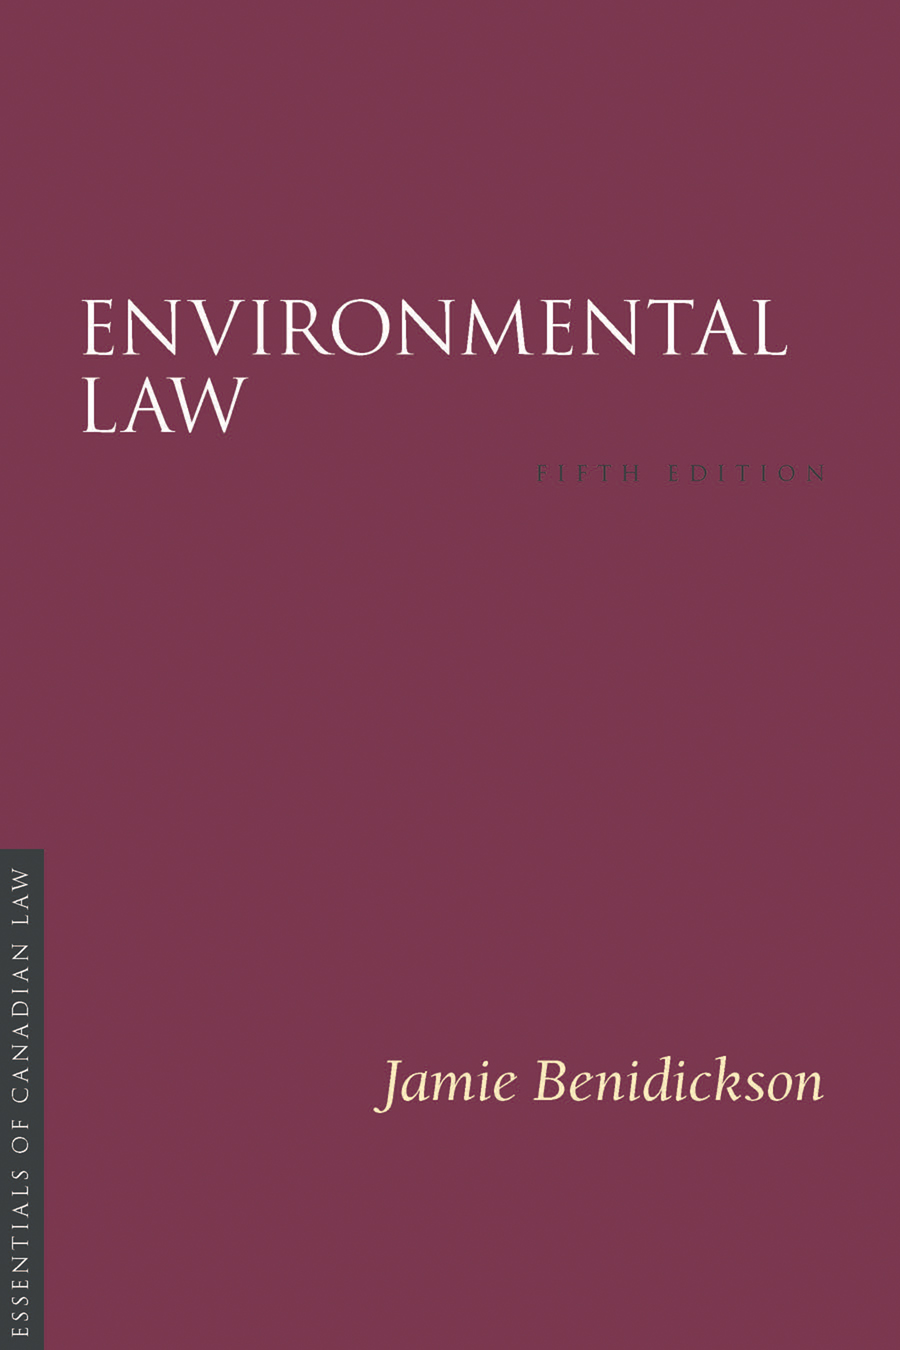 Book cover for Environmental Law by Jamie Benidickson. The cover is a solid burgundy colour with a simple type treatment in capital serif letters in white.